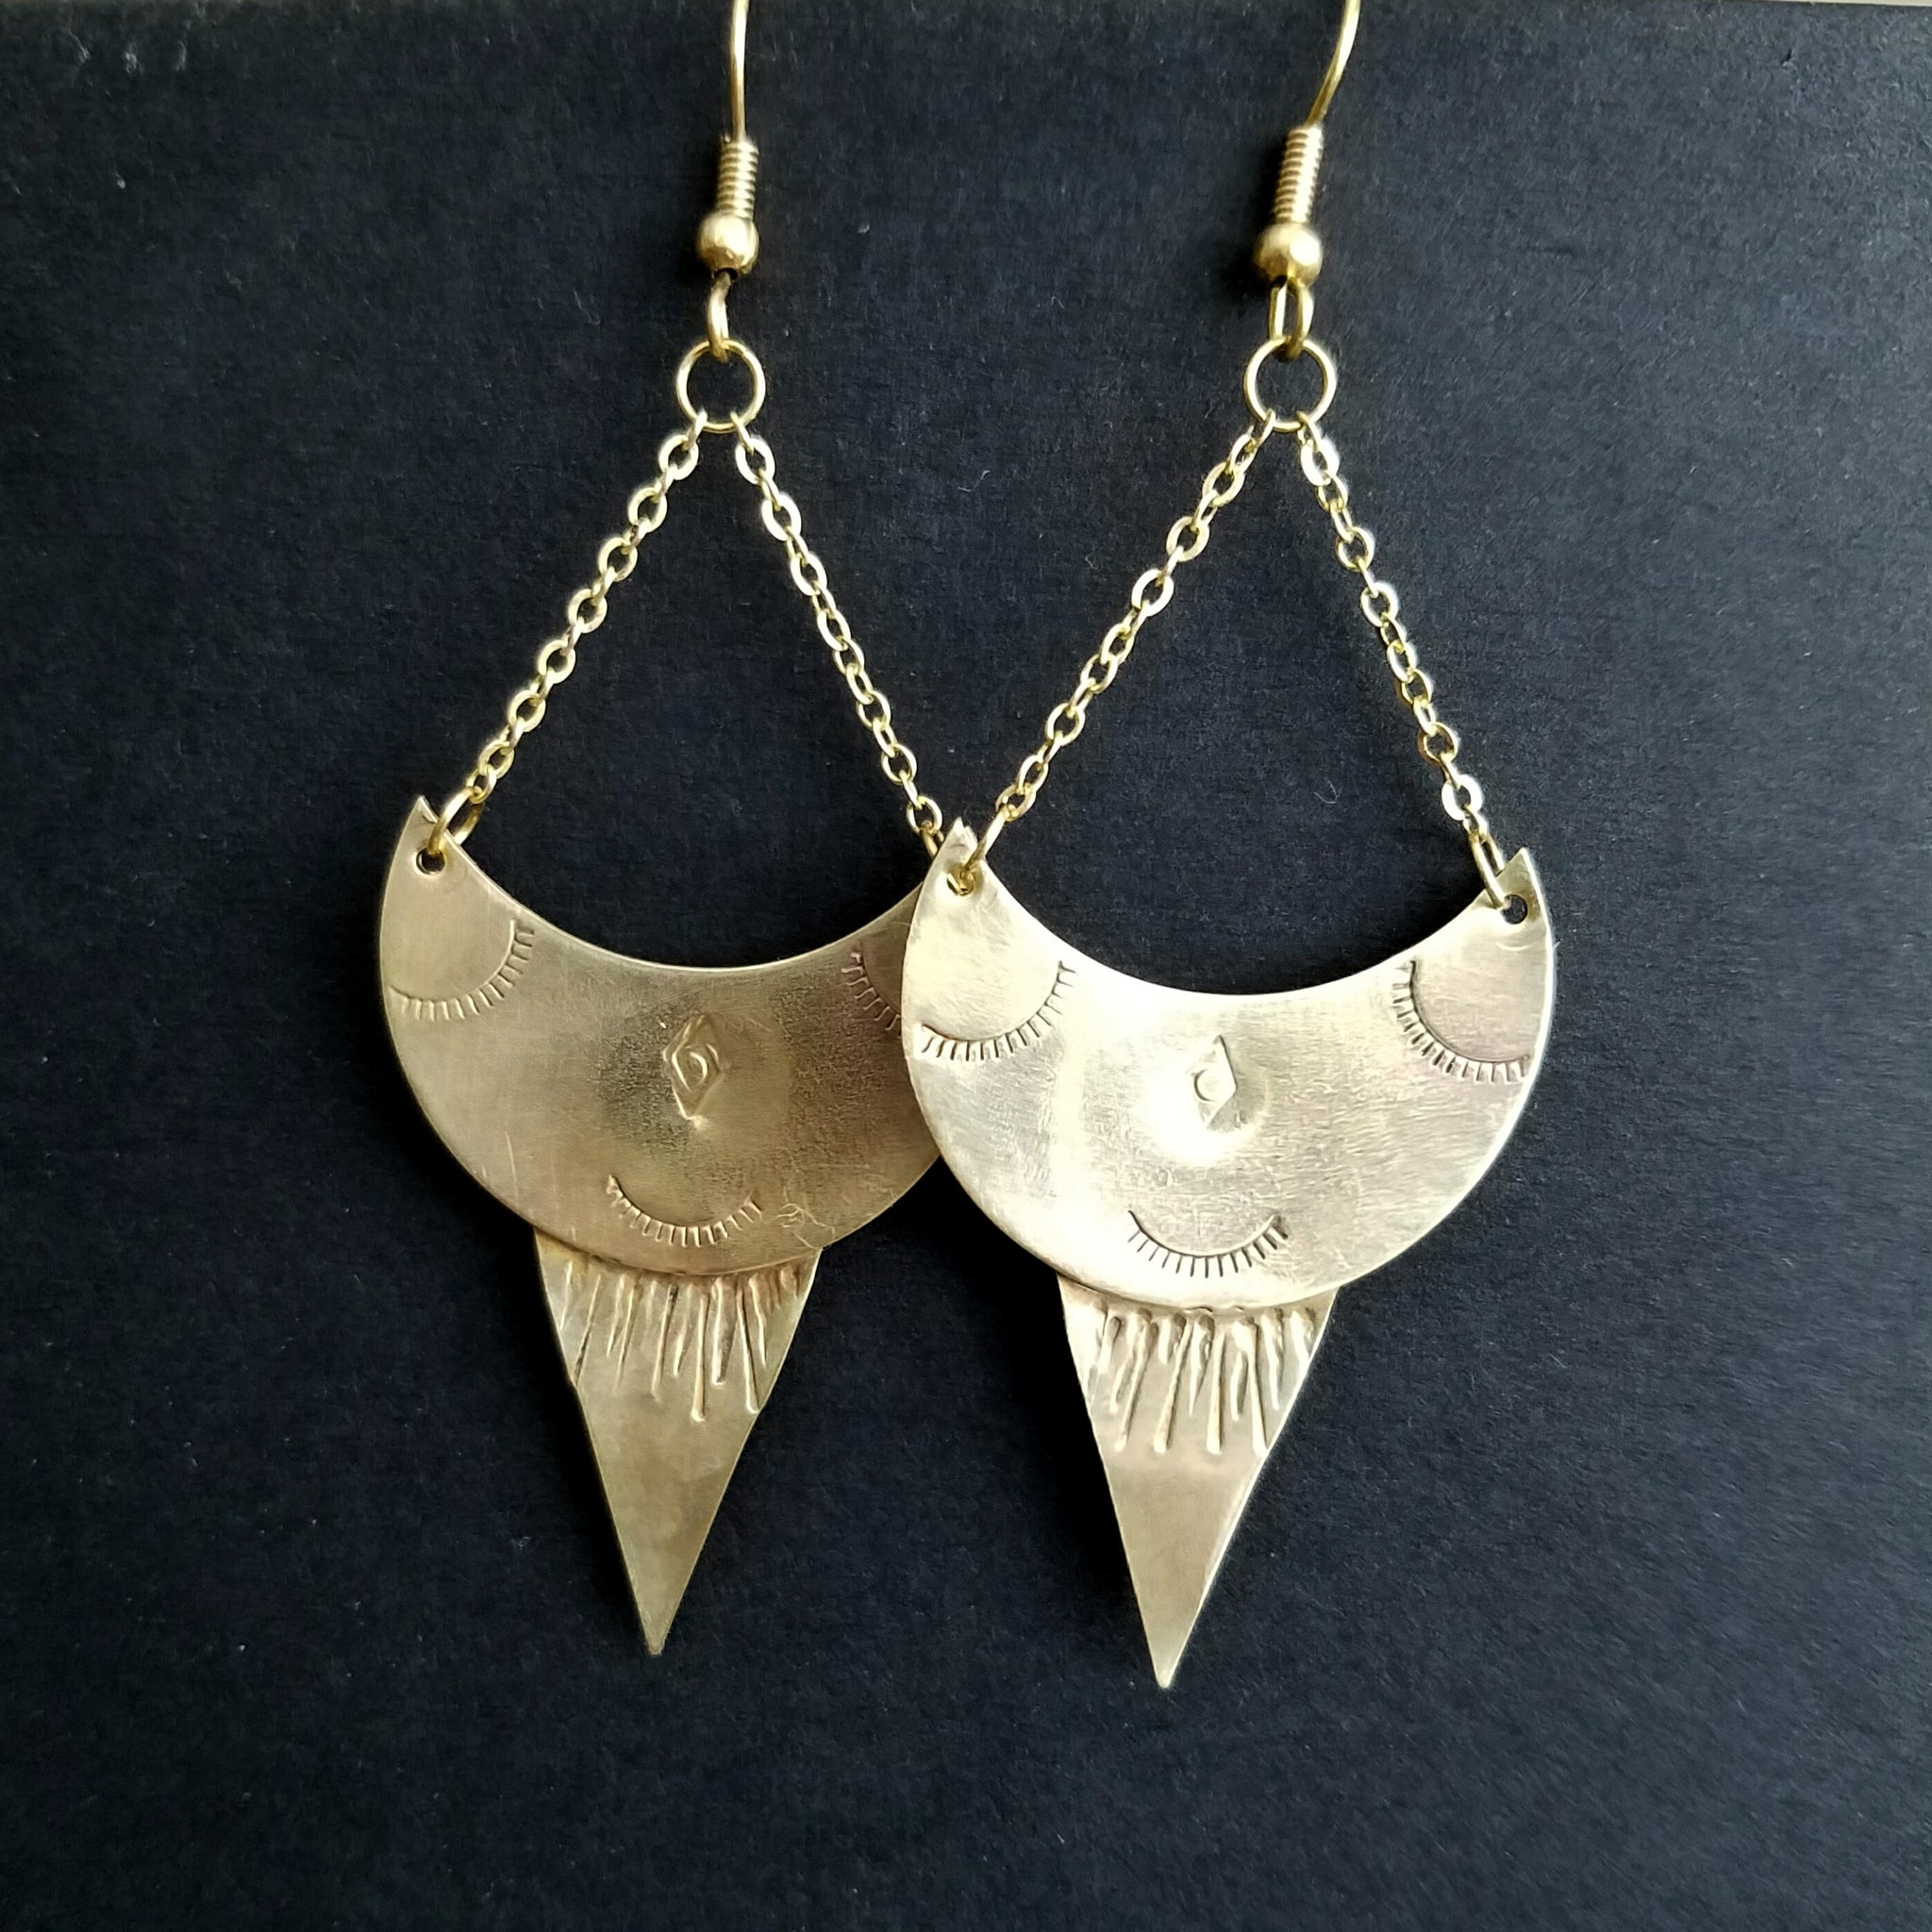 Celestial Alchemy Earrings - Verdilune